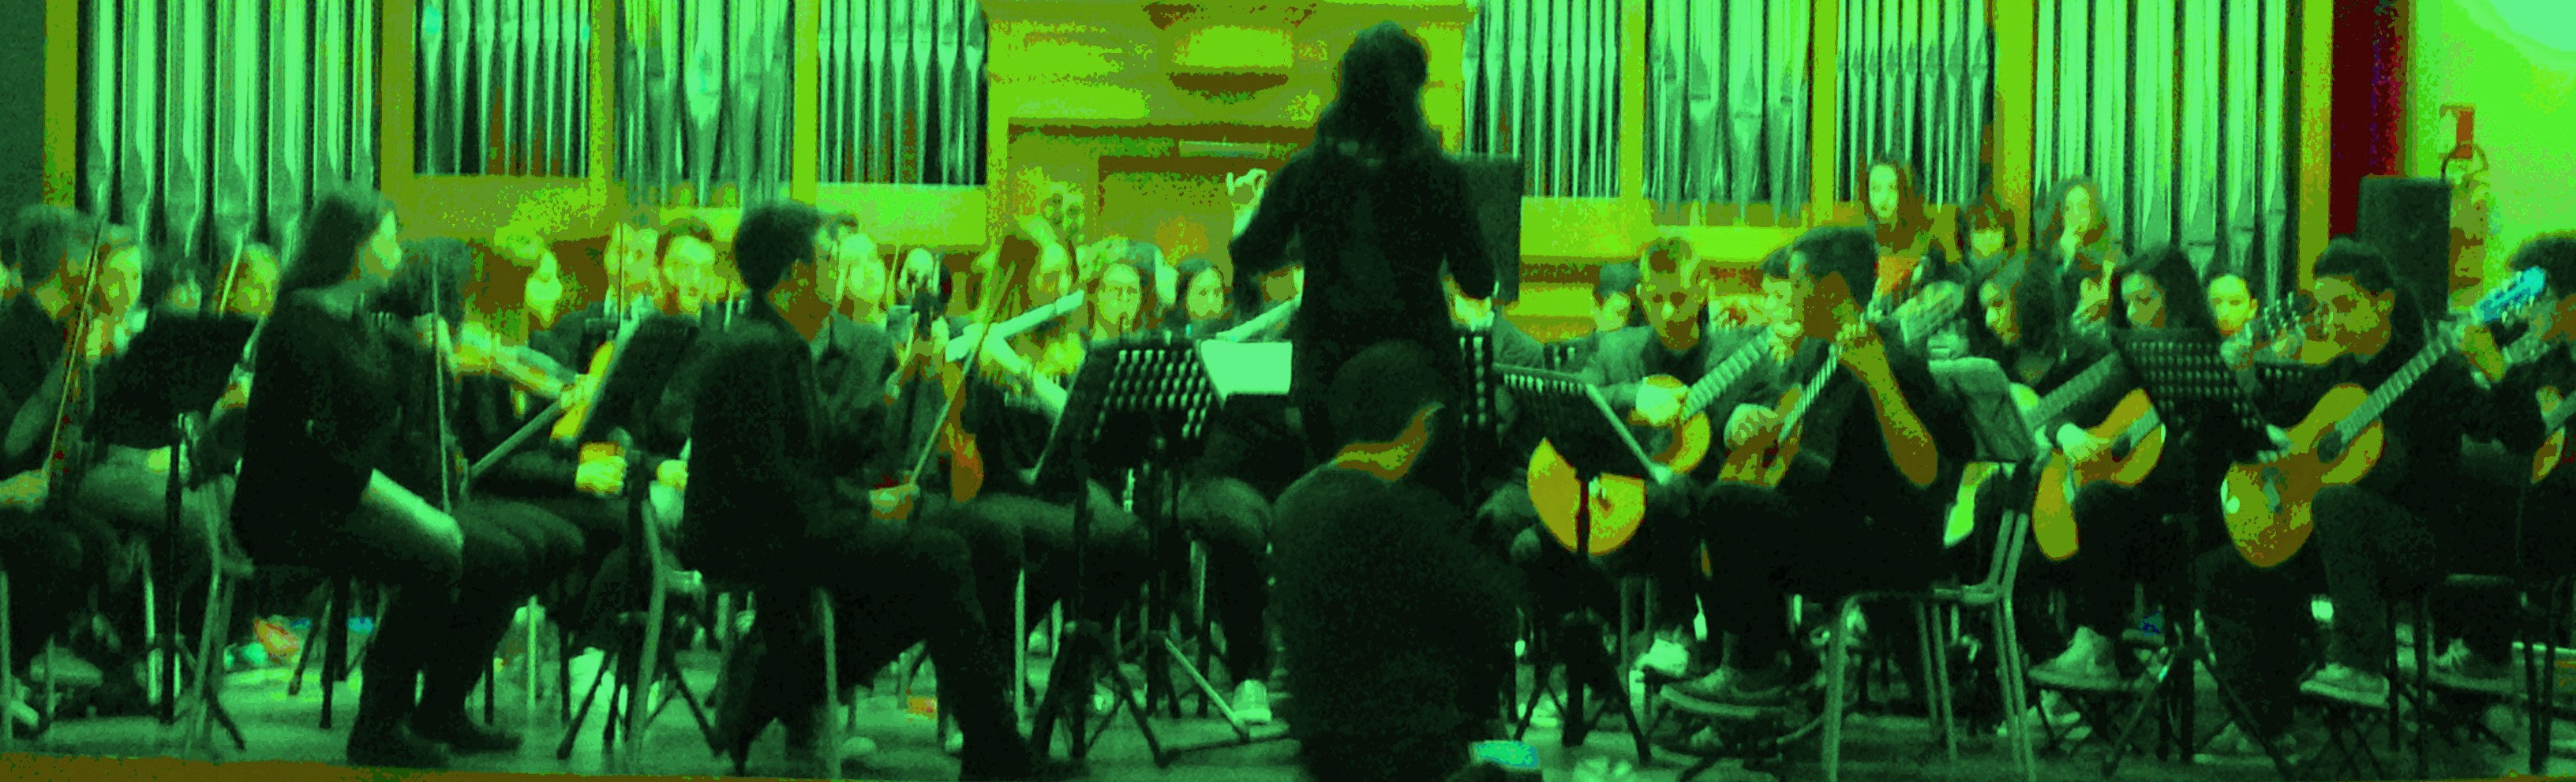 amicidellorchestra